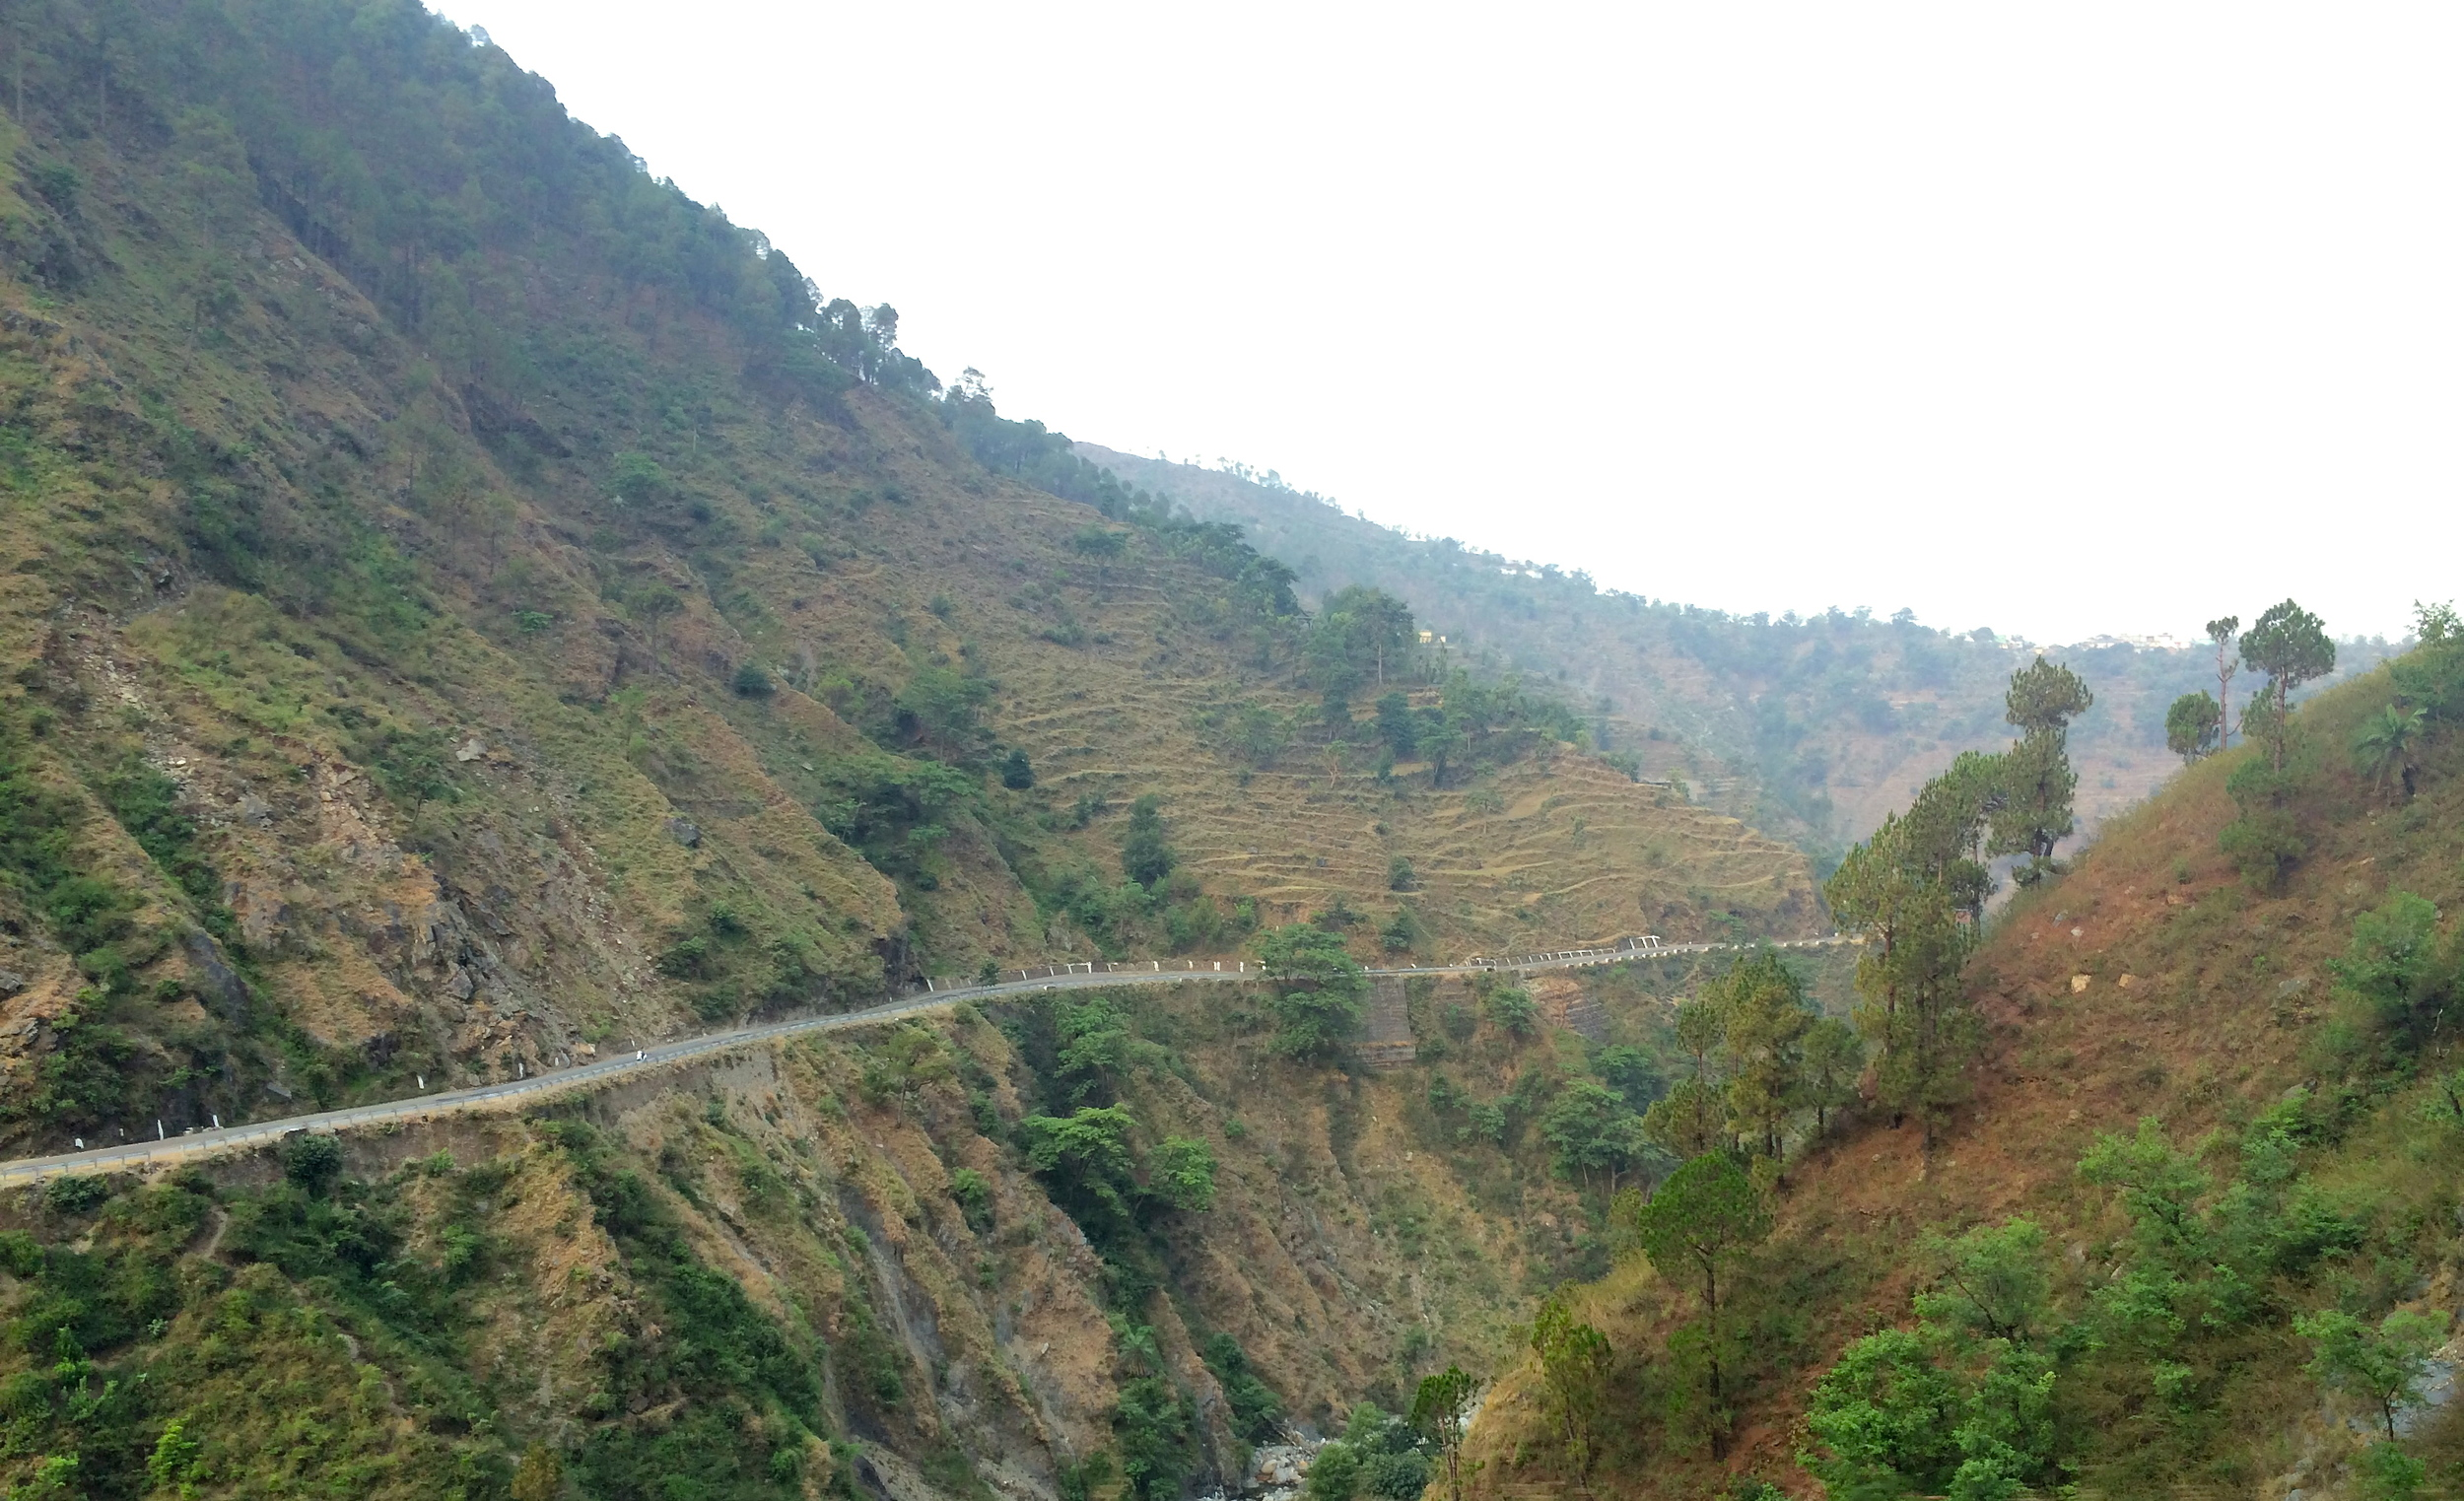 On the way to Dalhousie from Pathankhot